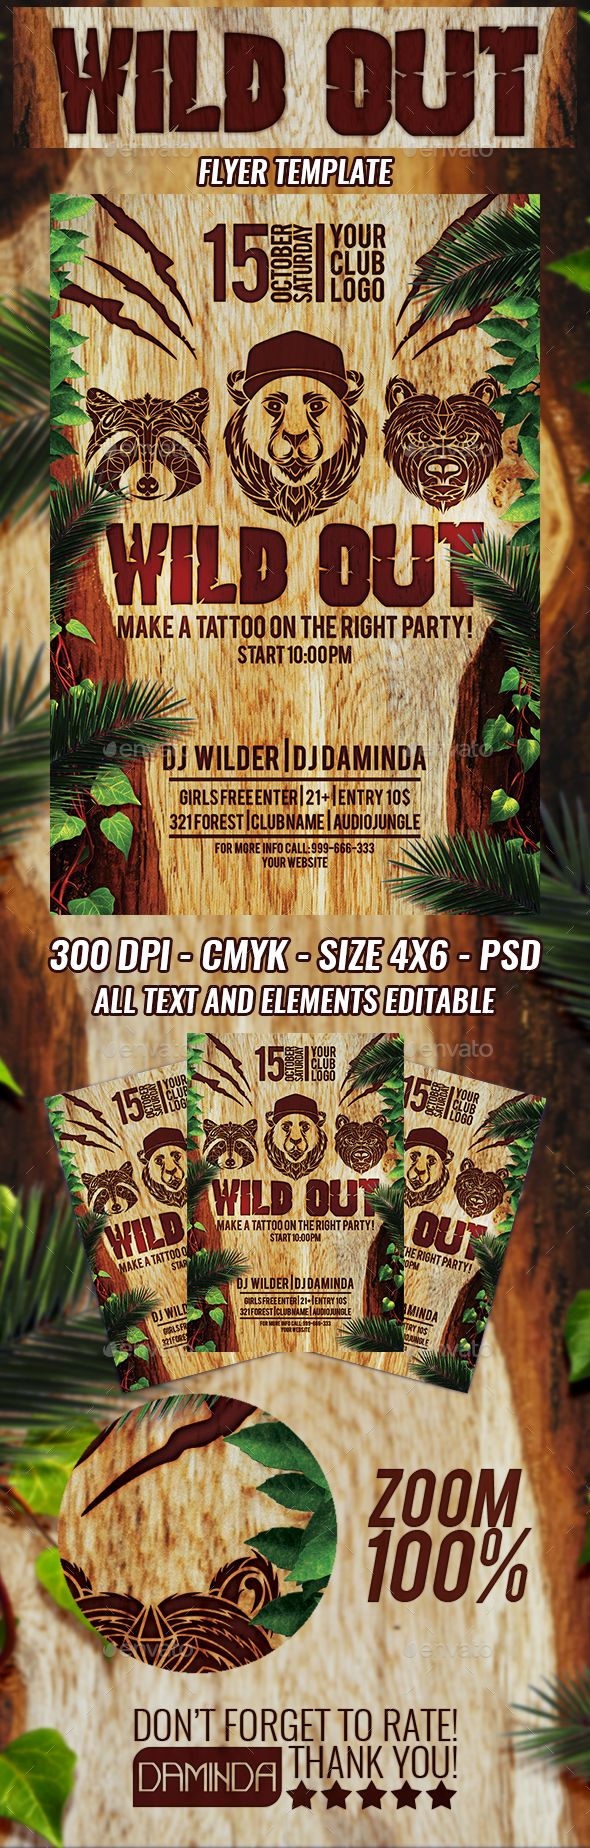 wild out party flyer template pinterest party flyer flyer